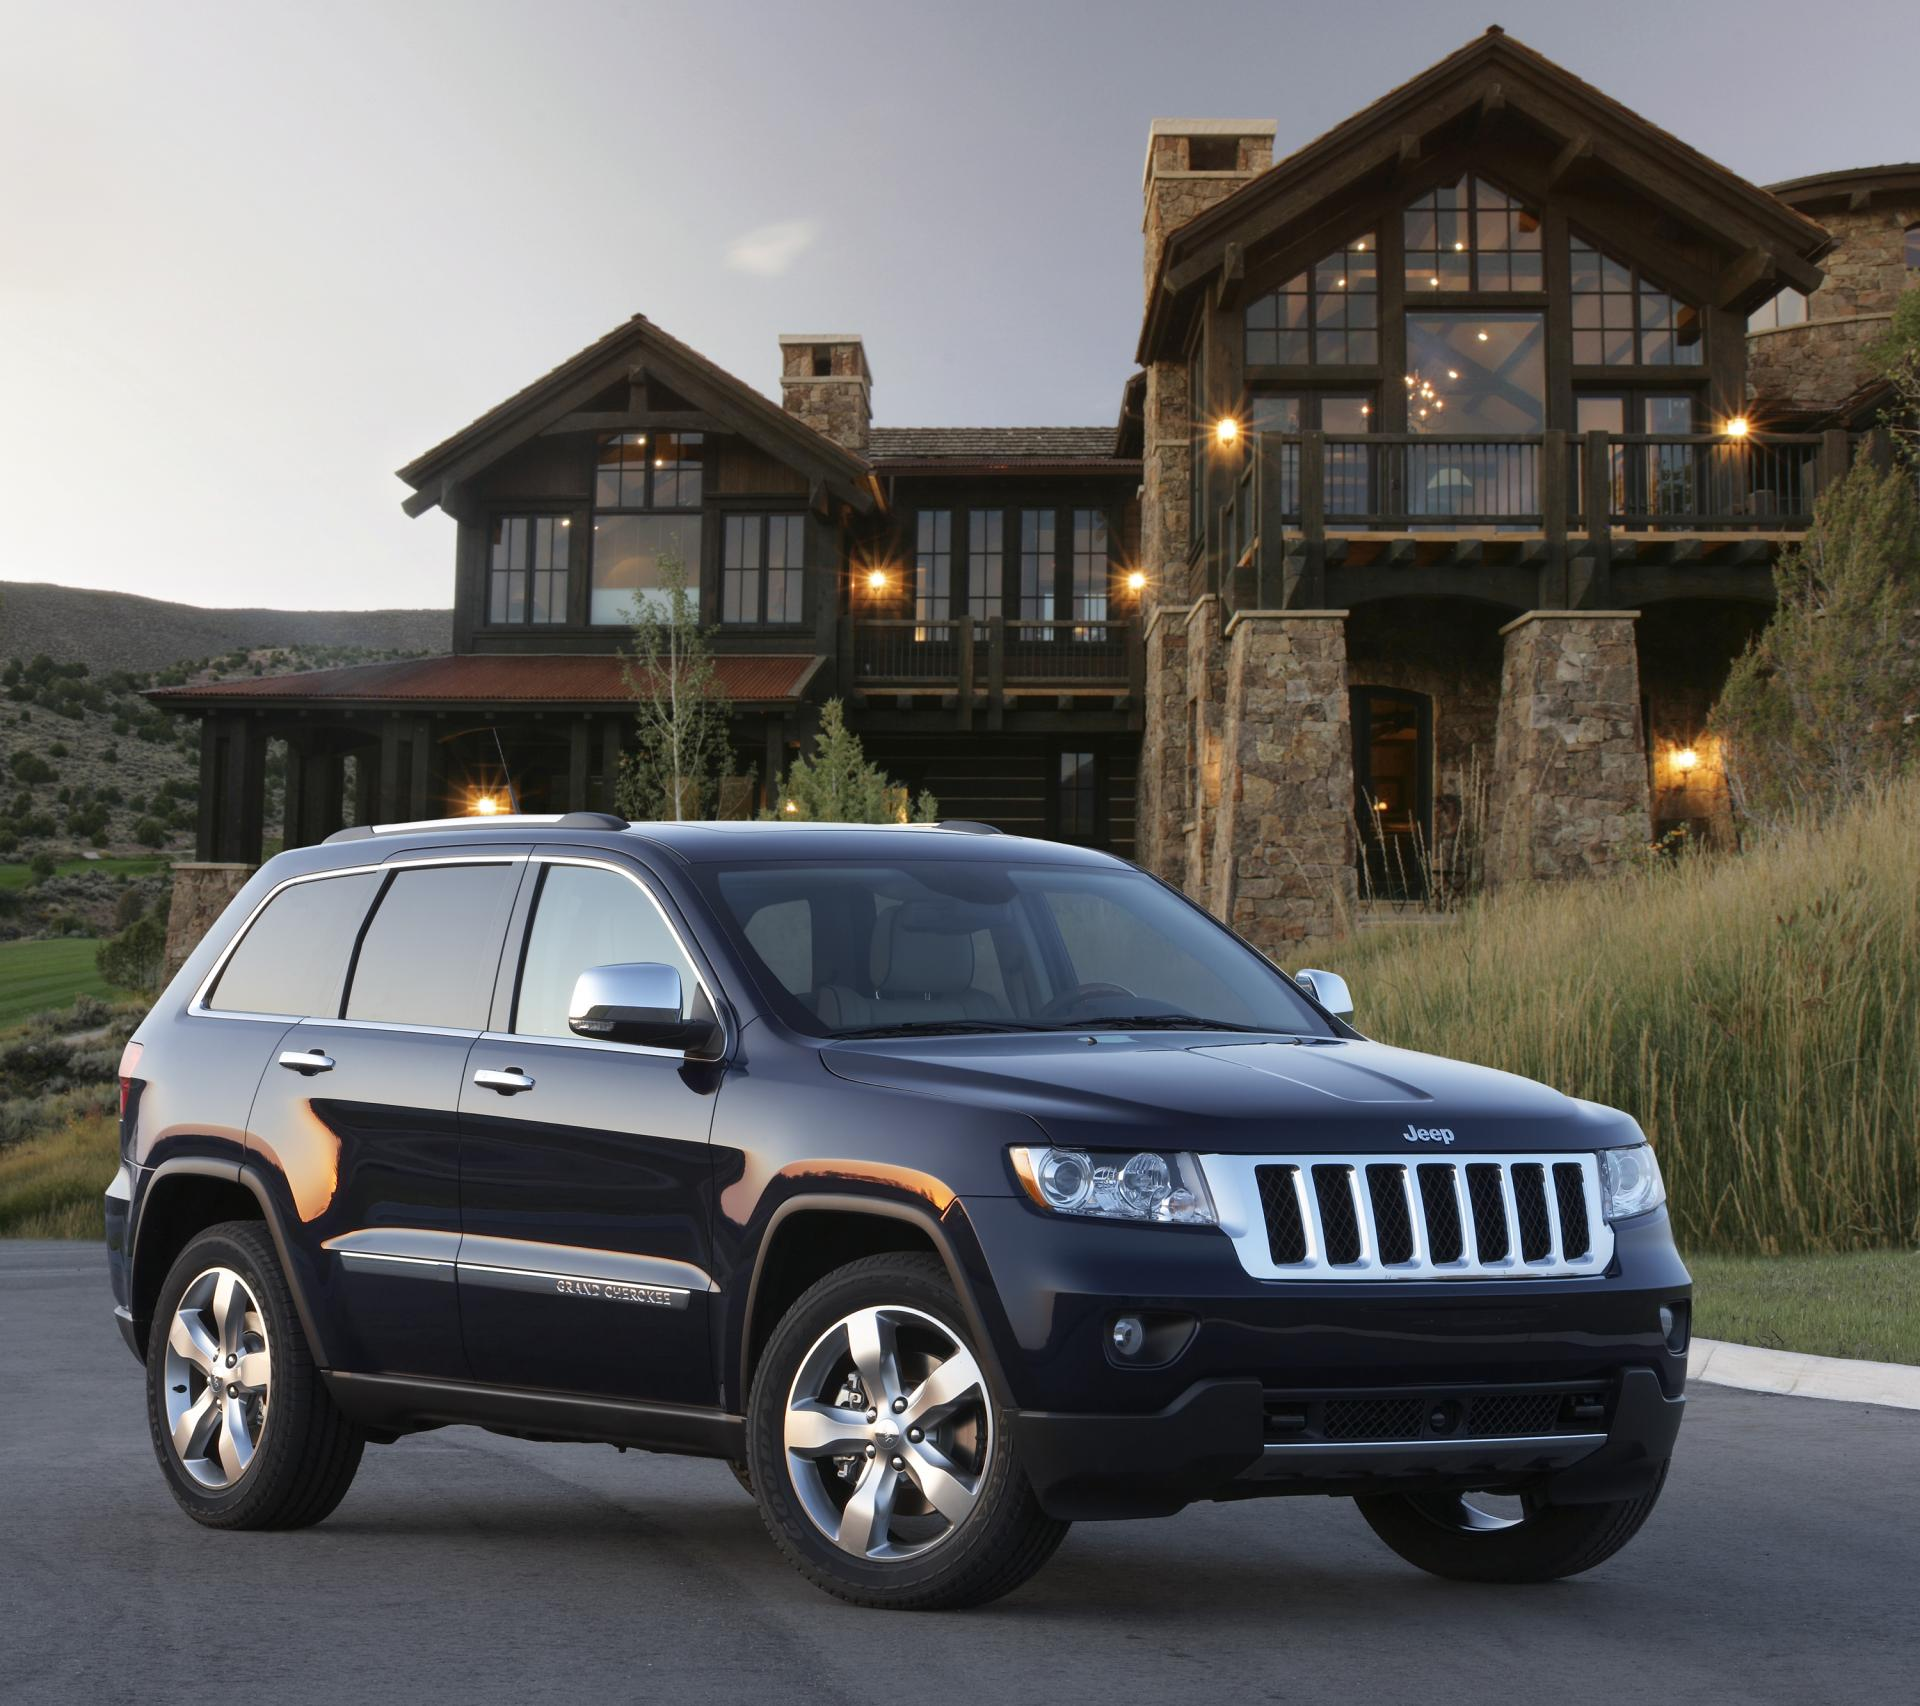 2012 jeep grand cherokee. Black Bedroom Furniture Sets. Home Design Ideas